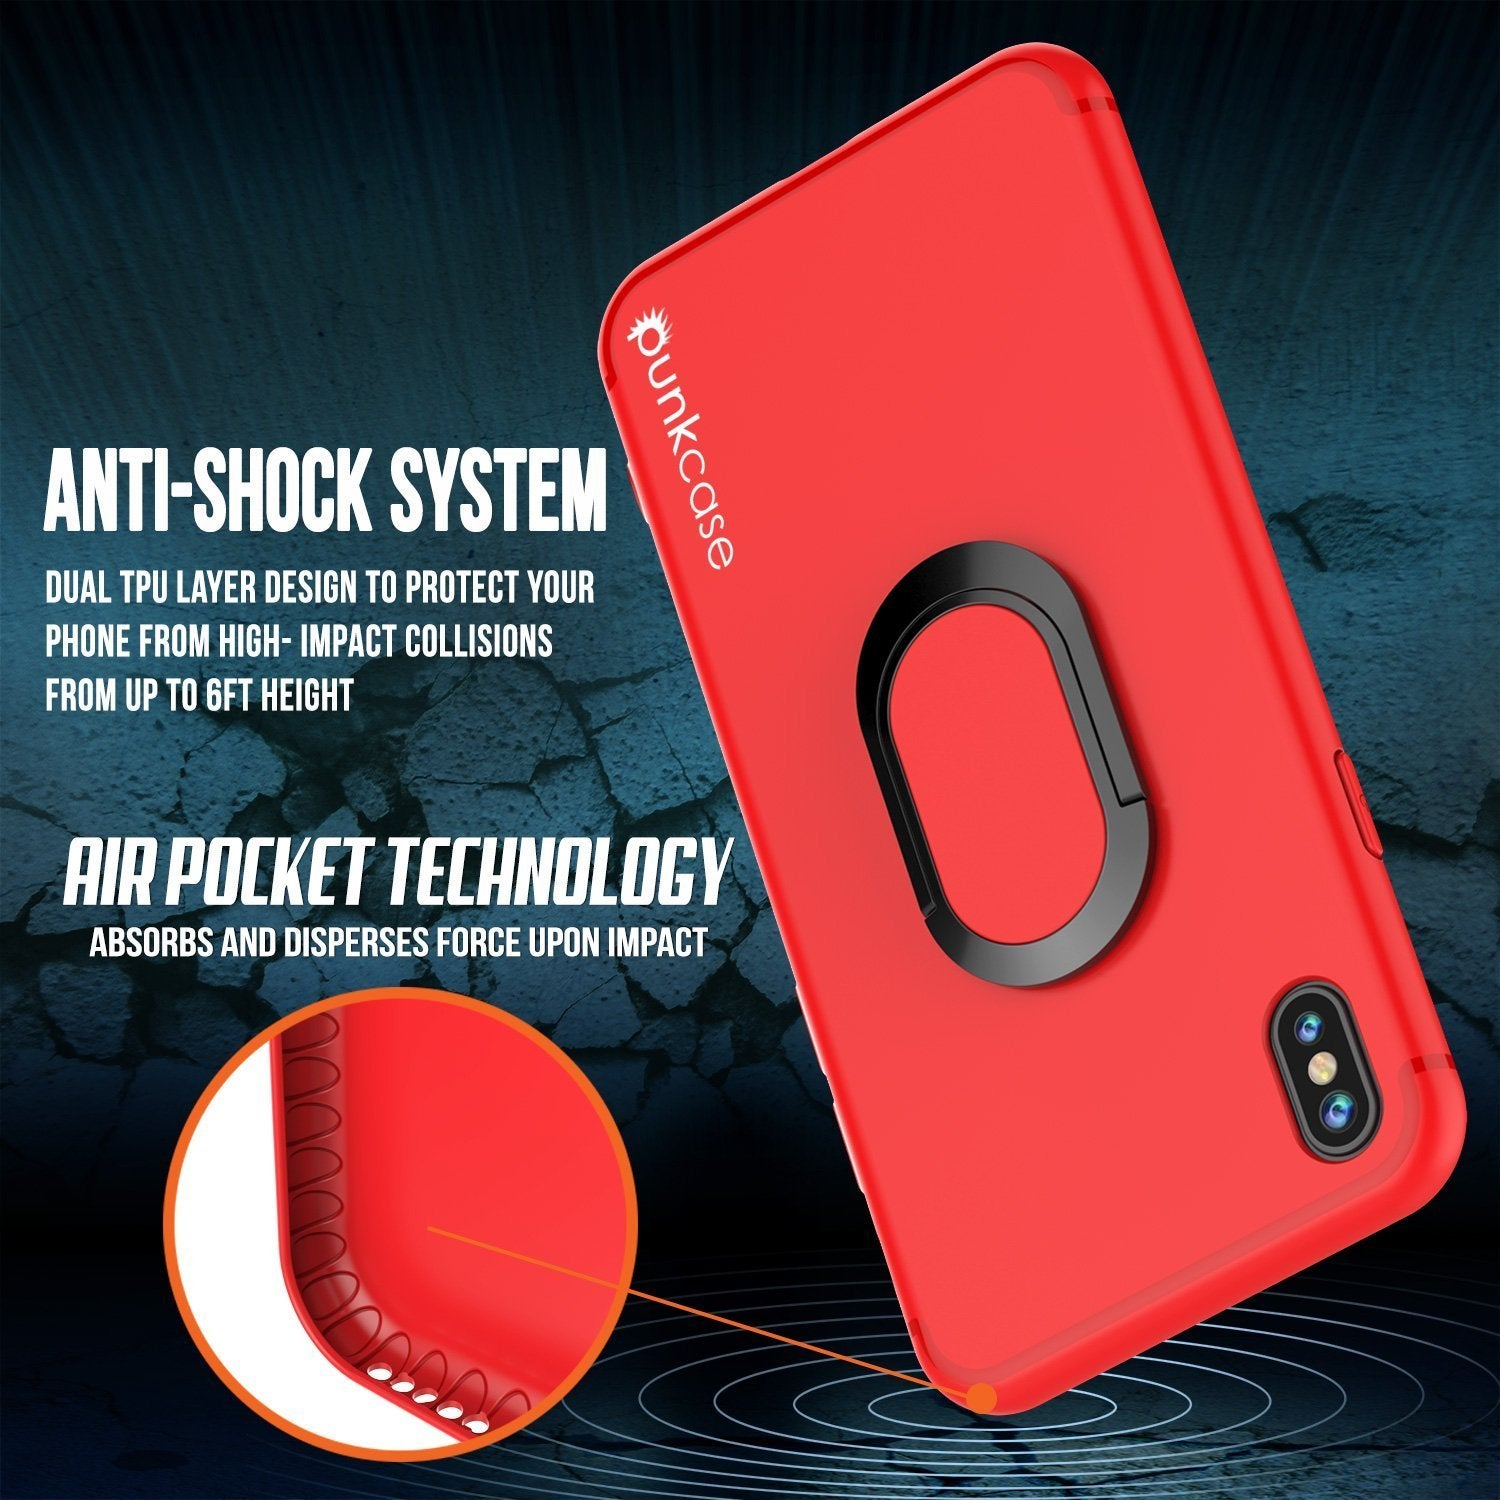 iPhone X Case, Punkcase Magnetix Protective TPU Cover W/ Kickstand, Tempered Glass Screen Protector [Red]